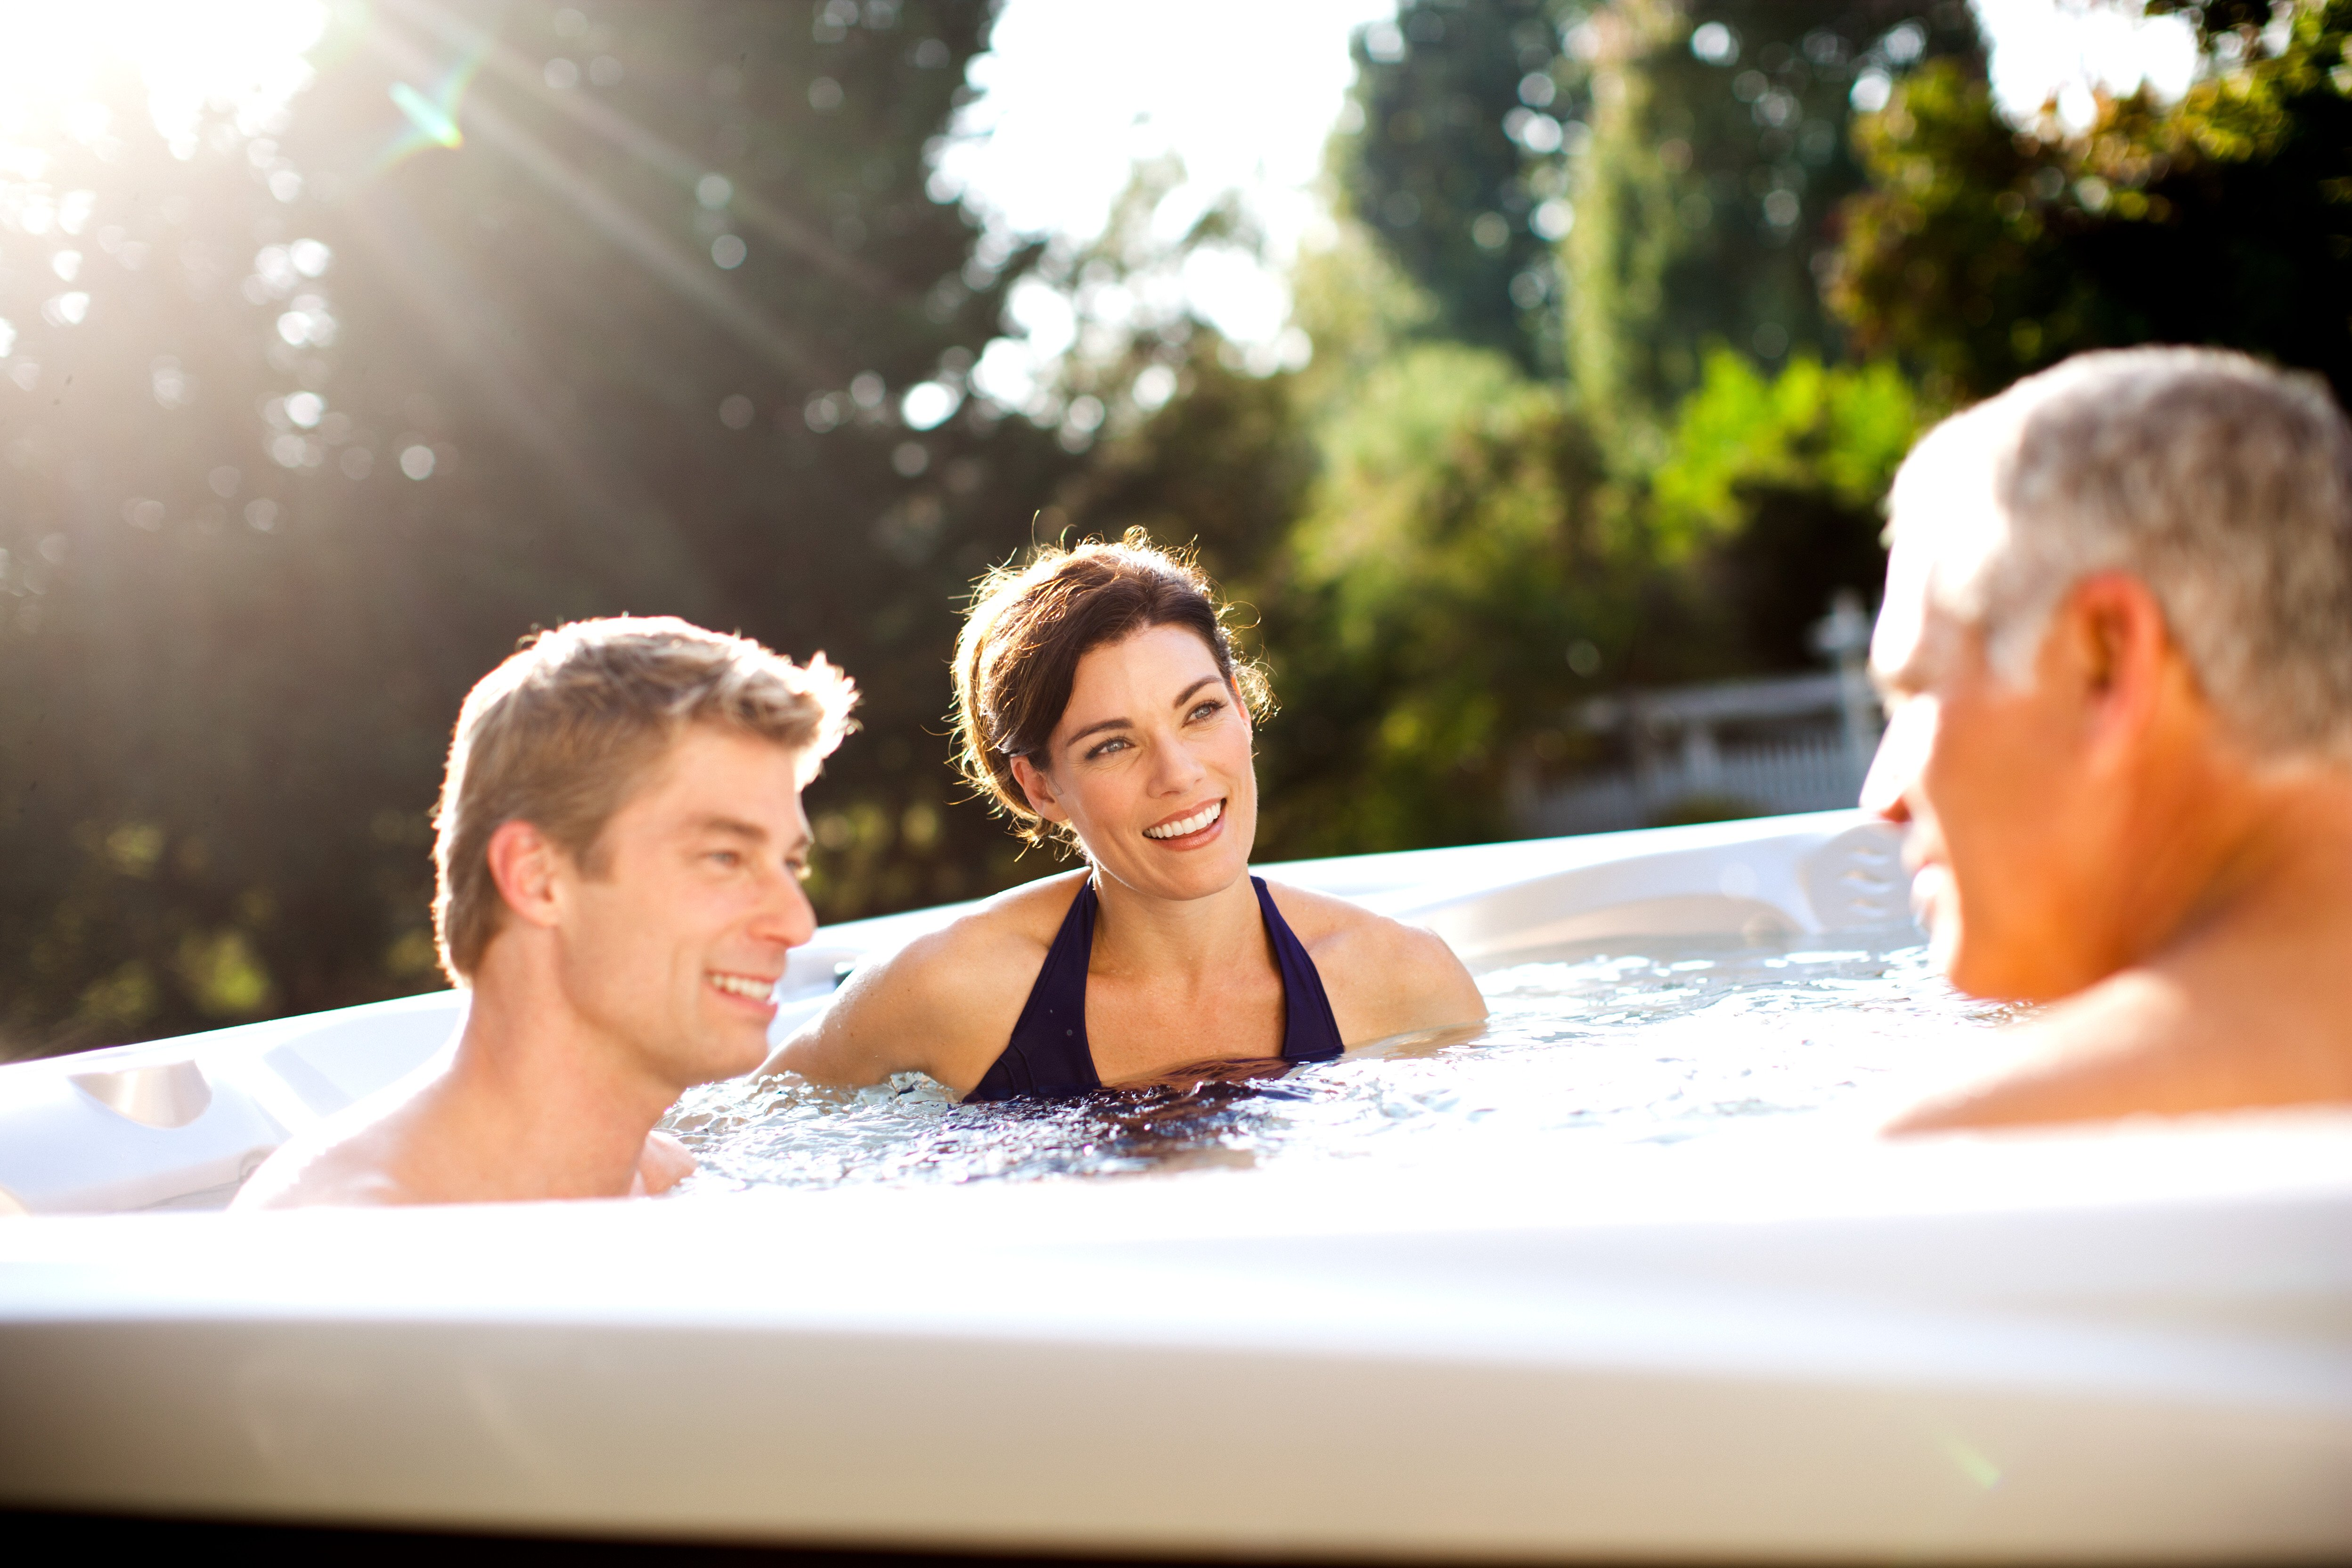 Low hot tub power consumption gives you a lot to smile about!